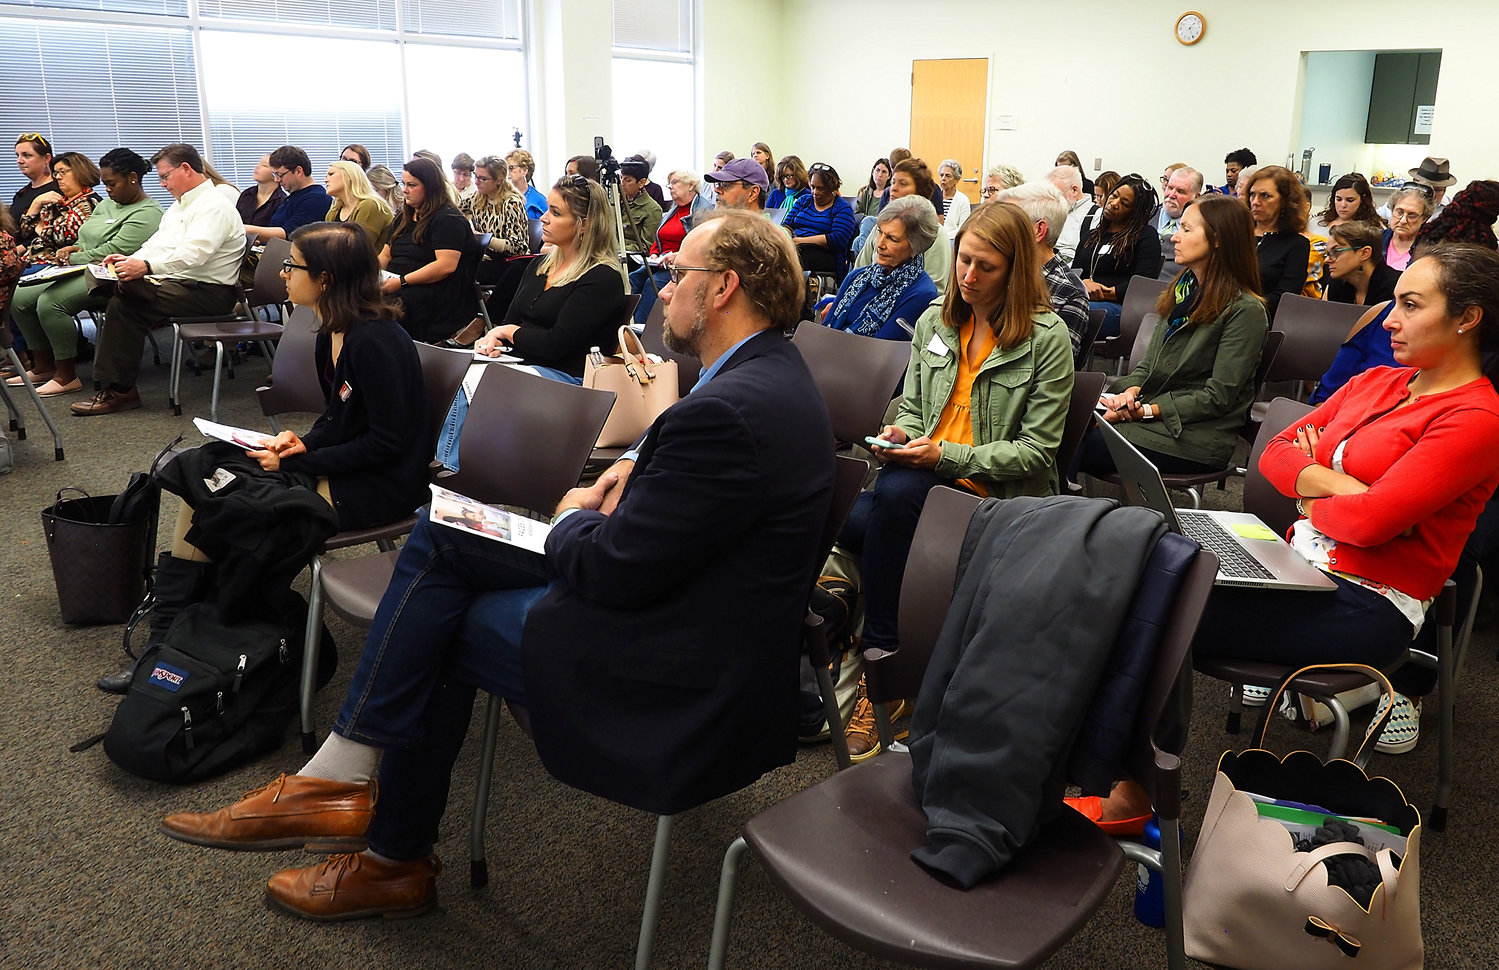 At Friday's hunger forum, sponsored by Carolina Public Press, Chatham residents filled the Chatham Community Library in Pittsboro to discuss ways to address food insecurity.